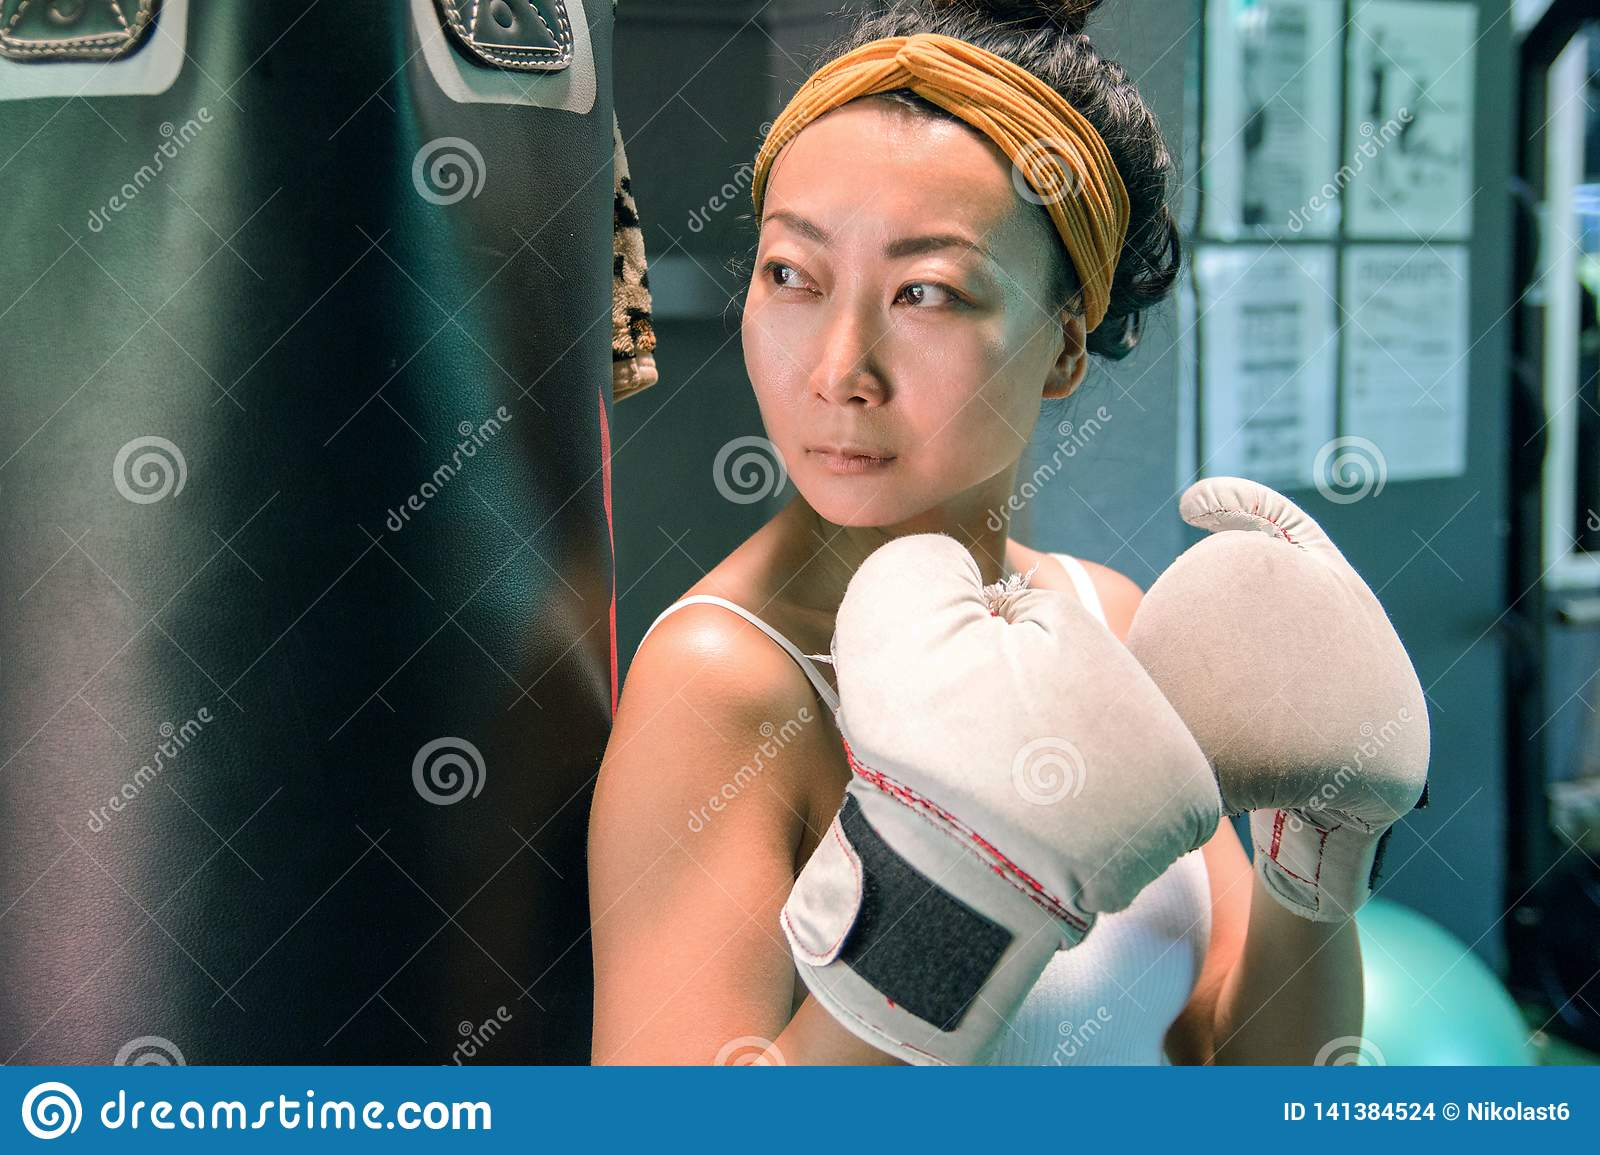 Beautiful asian girl with white Boxing gloves standing near a pear in the gym.